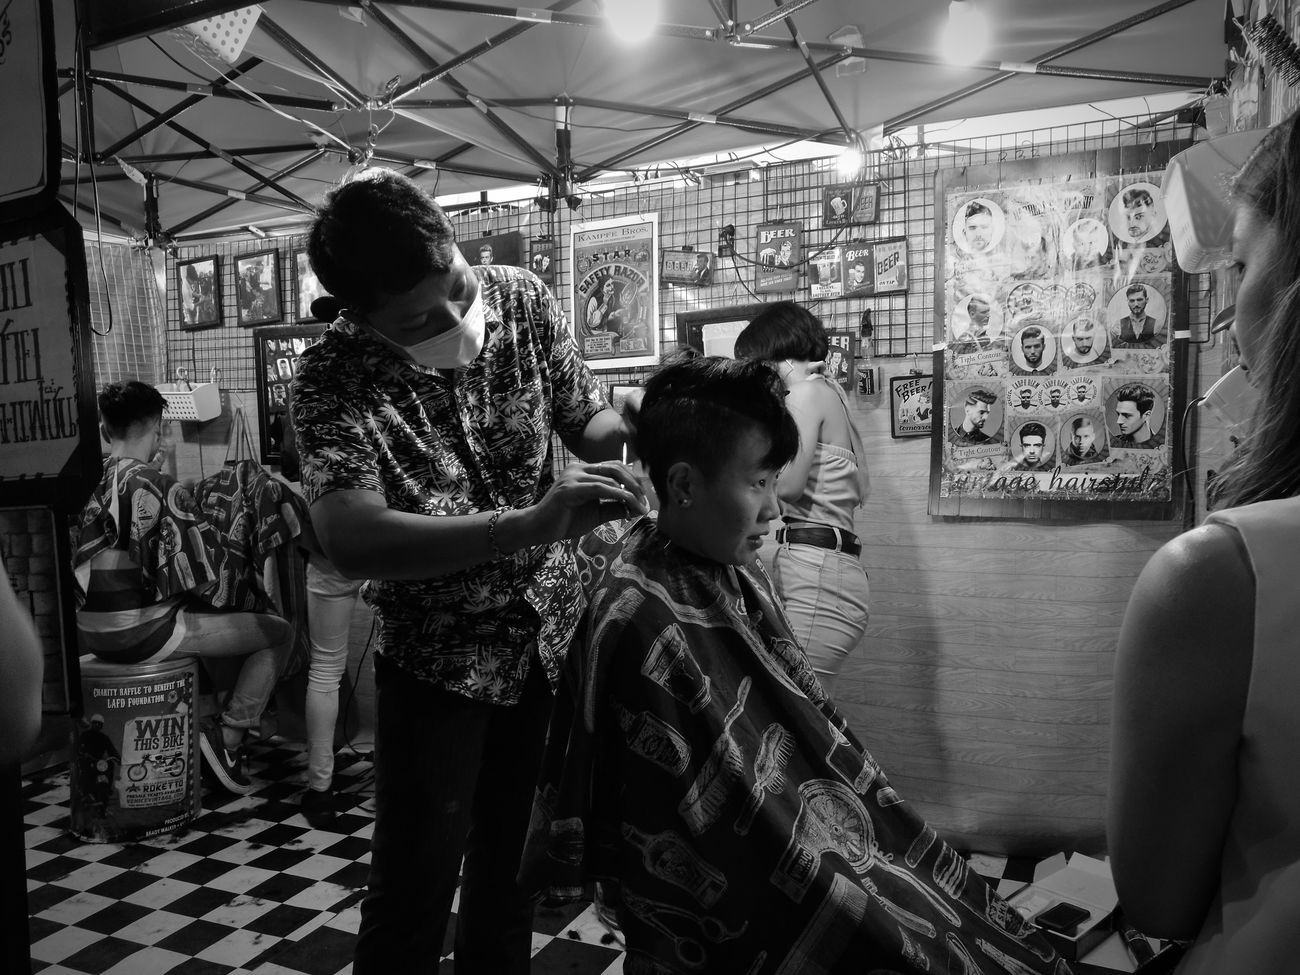 People Life Barber Stylish Oldschool Black And White P9 Huawei Bangkok Streetphotography Real People Outdoors